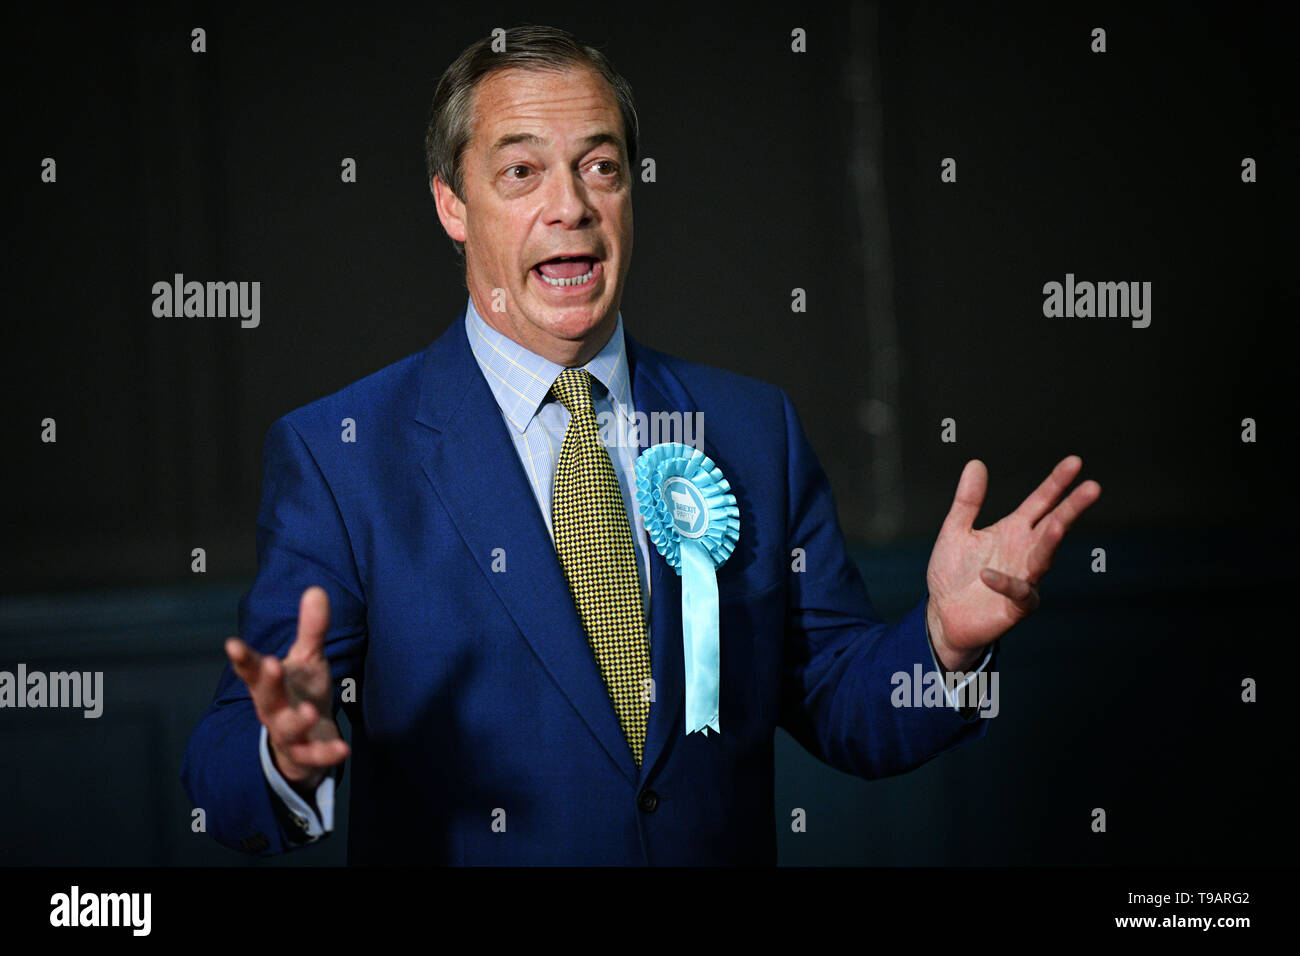 Edinburgh, Scotland, UK. 17th May 2019. Nigel Farage in Edinburgh for a rally with the Brexit PartyÕs European election candidates. Credit: Steven Scott Taylor/Alamy Live News Stock Photo